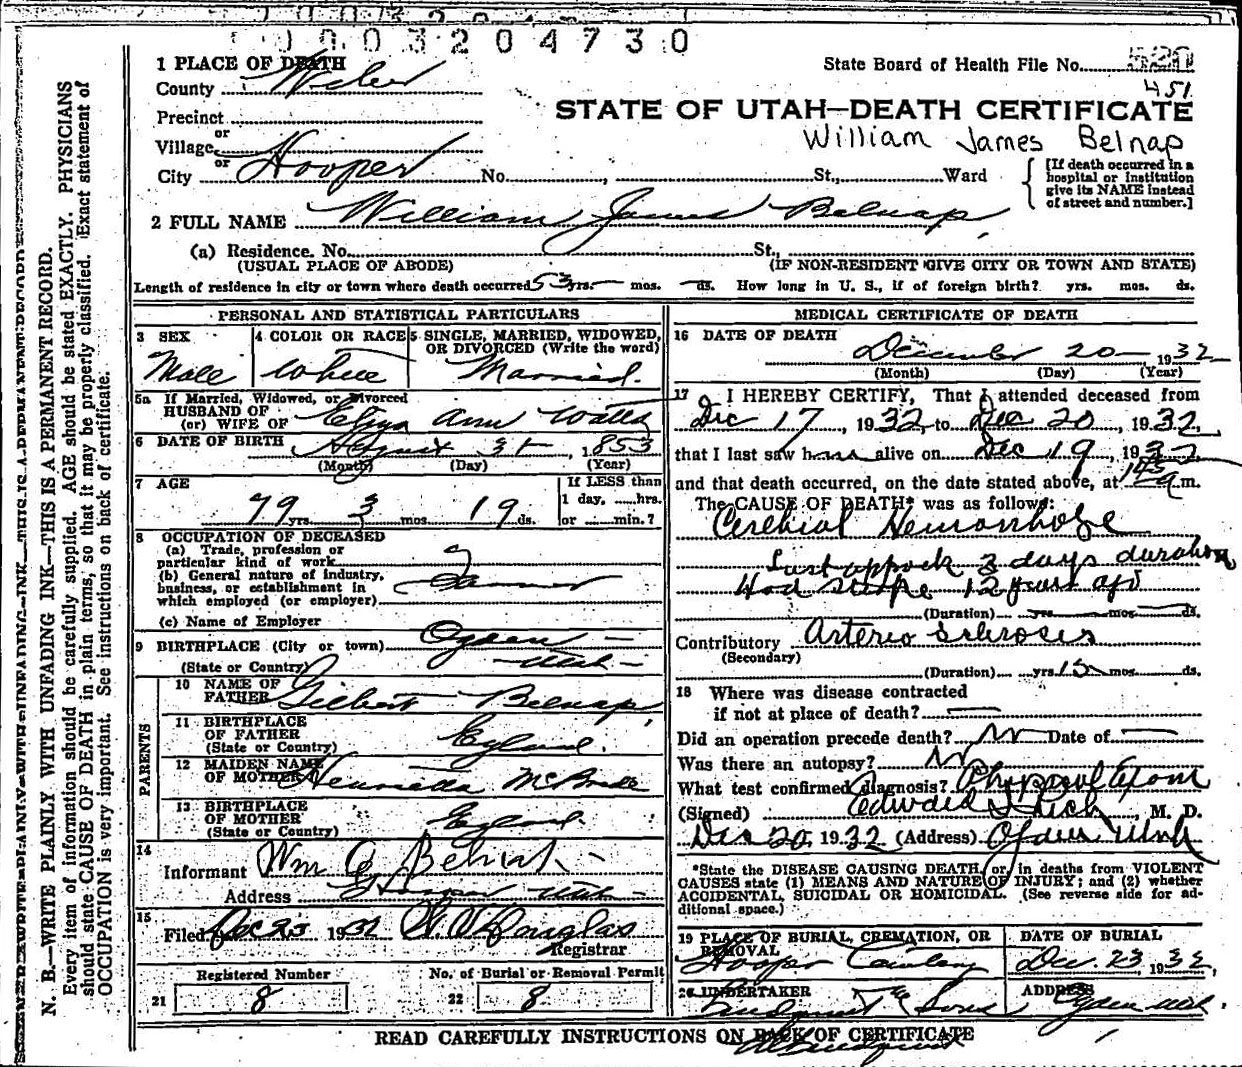 Death records death certificate william james belnap 1932 1betcityfo Choice Image